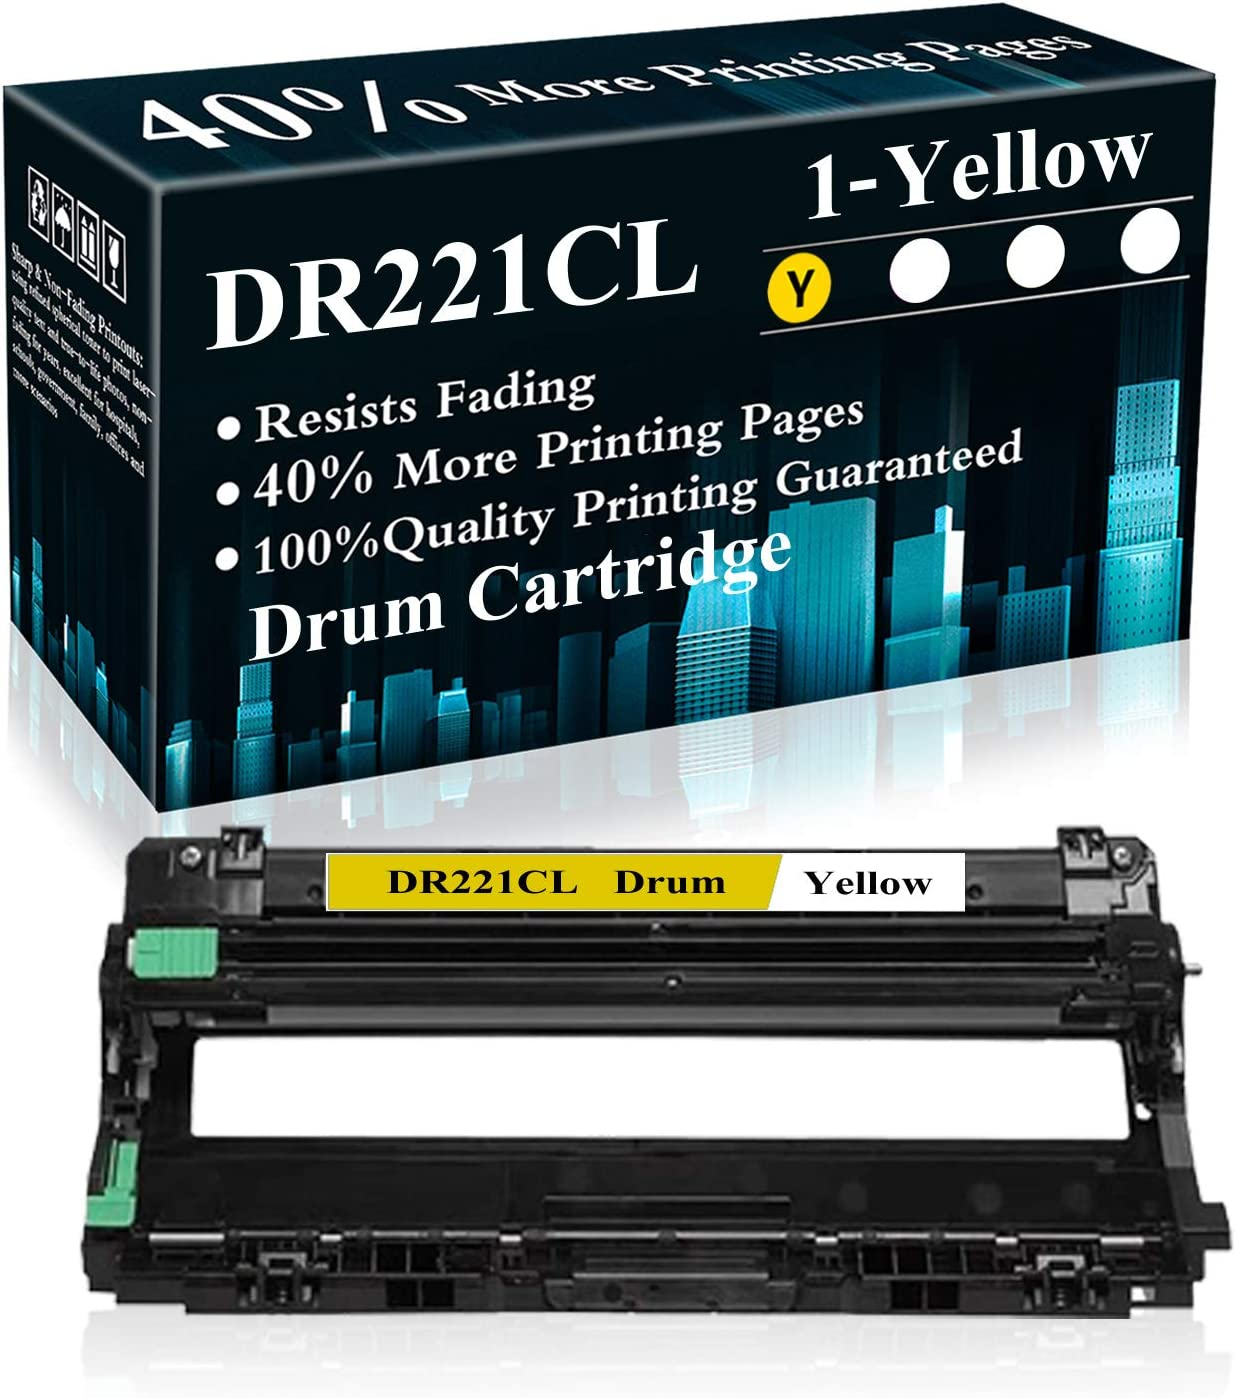 1 Yellow DR221CL Drum Unit Replacement for Brother HL-3140CW 3150CDN 3170CDW 3180CDW 9130CW 9140CDN 9330CDW 9340CDW 9015CDW 9020CDN Printer,Sold by TopInk